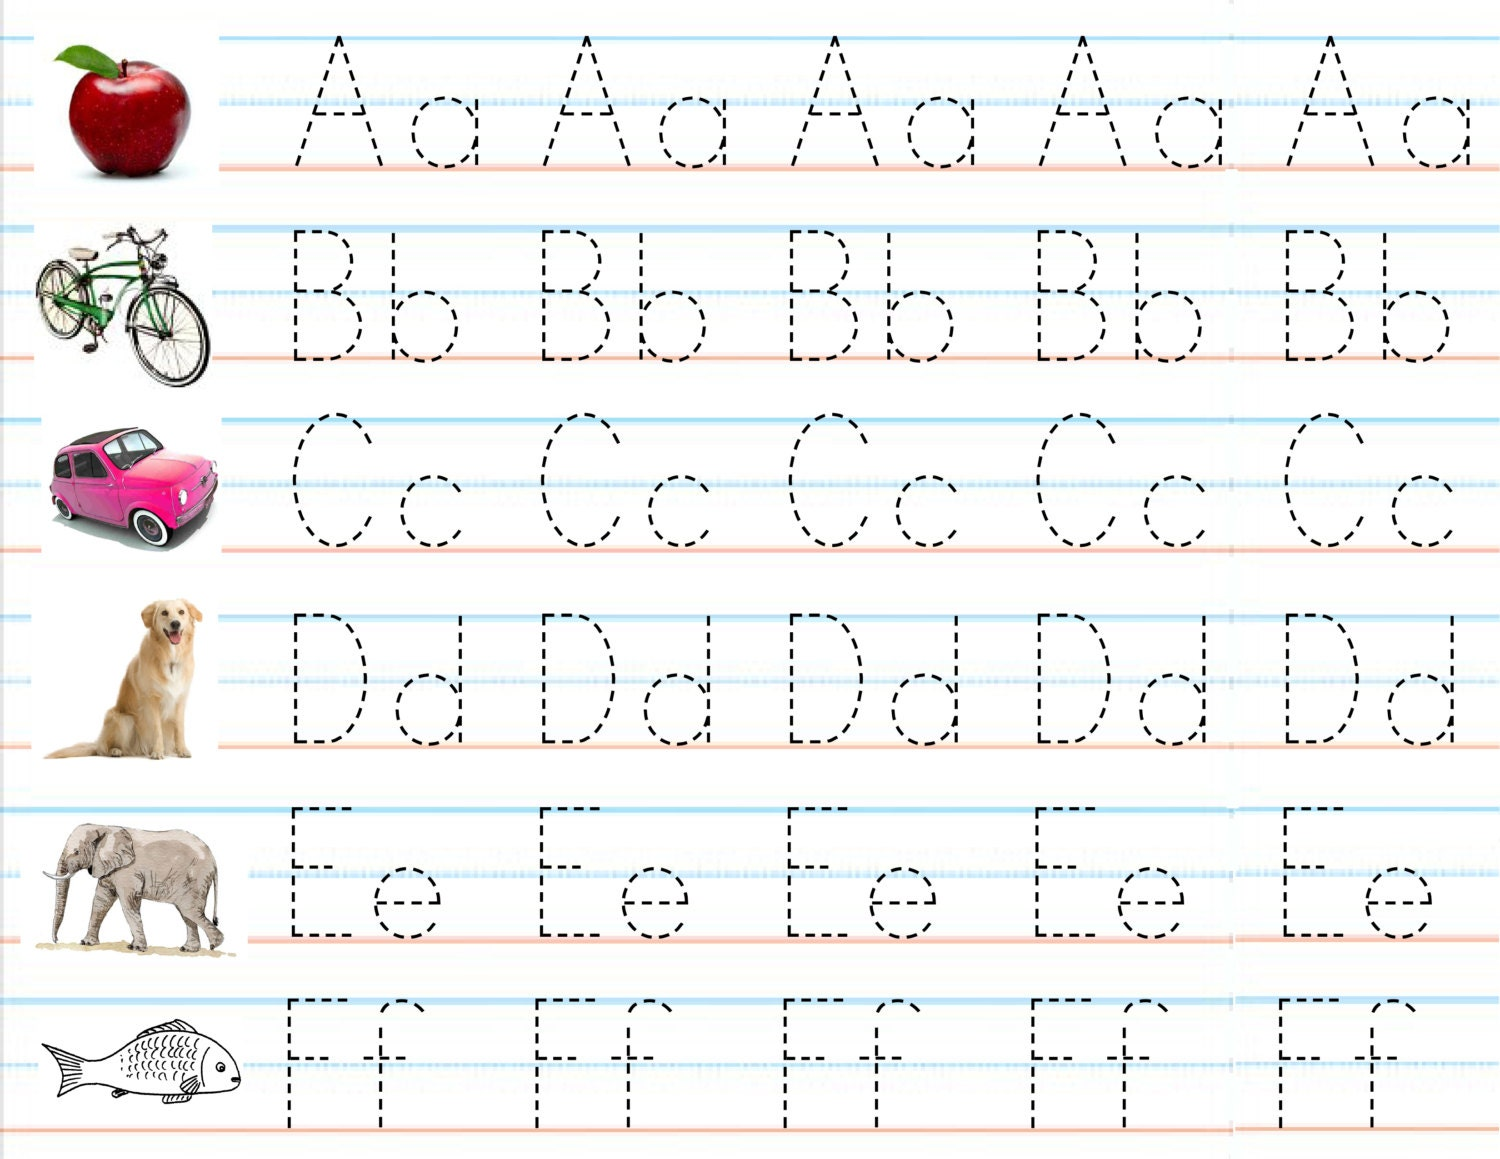 Worksheet How To Write The Alphabet In Handwriting worksheet abc handwriting practice sheets mikyu free il fullxfull 480400408 mklb jpg worksheets coffemix